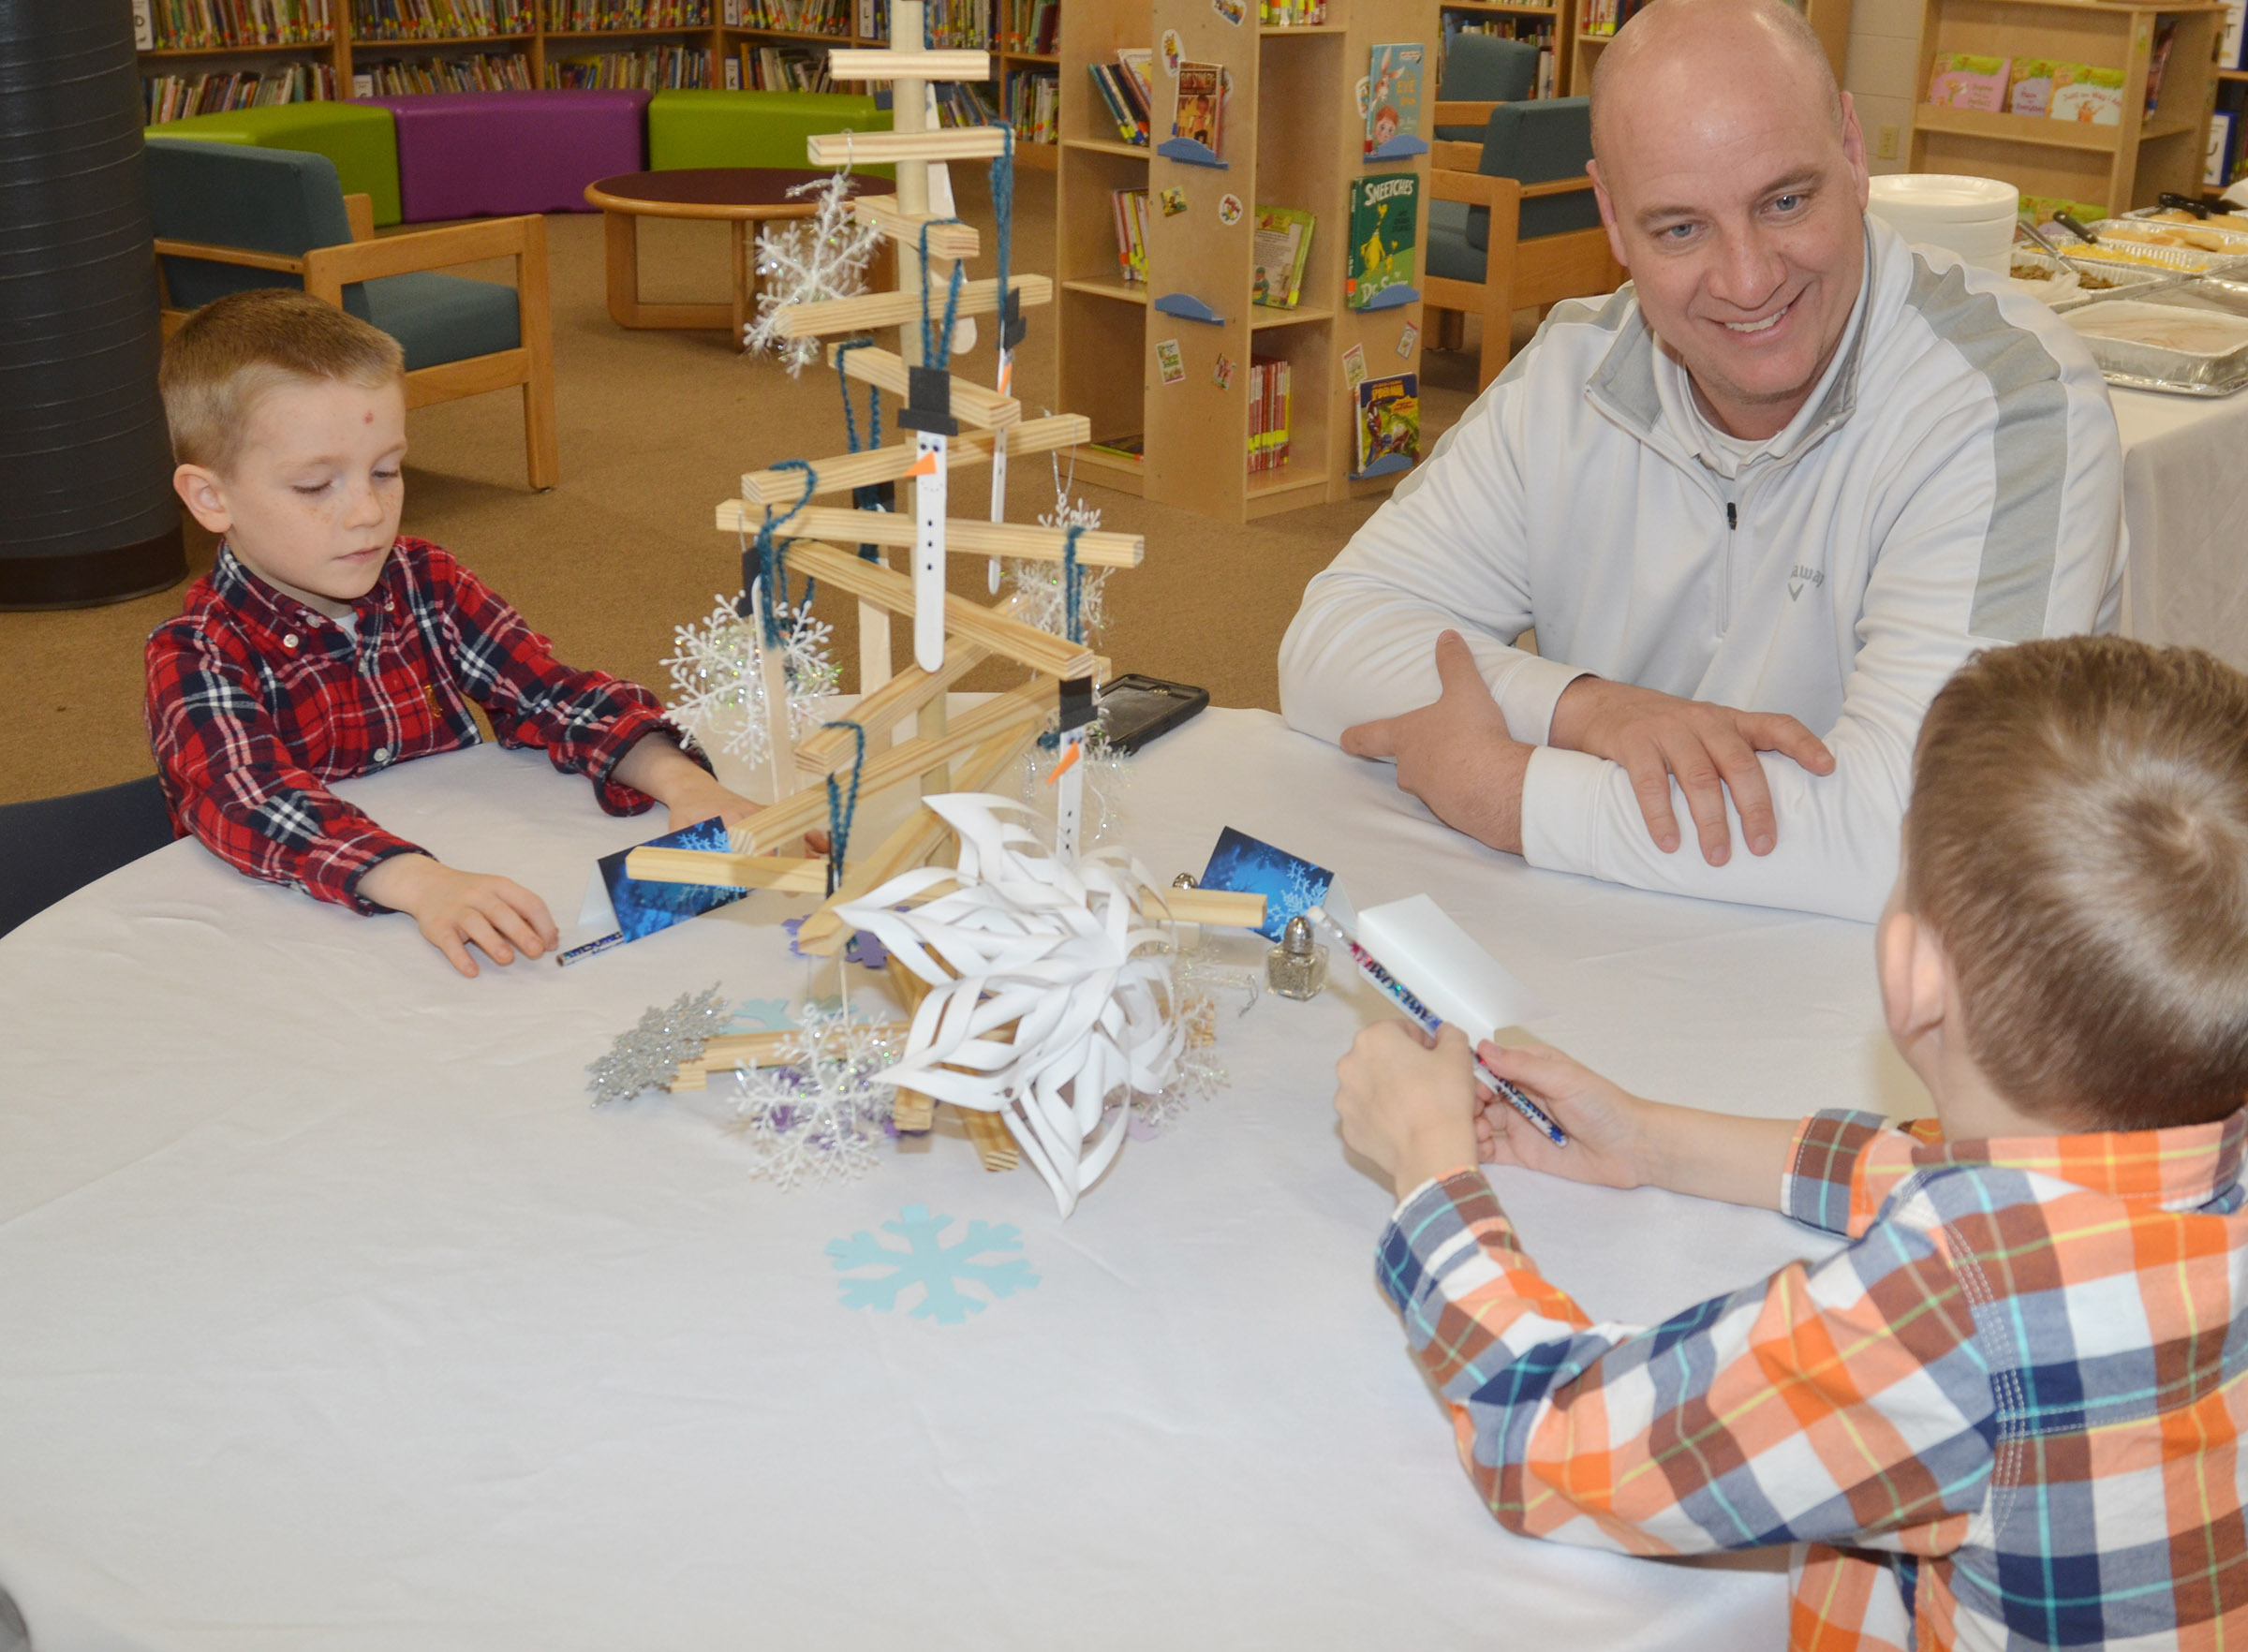 Campbellsville Independent Schools Director of District Wide Services and Transportation Director David Petett has lunch with kindergartener Jason Eggers, at left, and first-grader Logan Weddle.